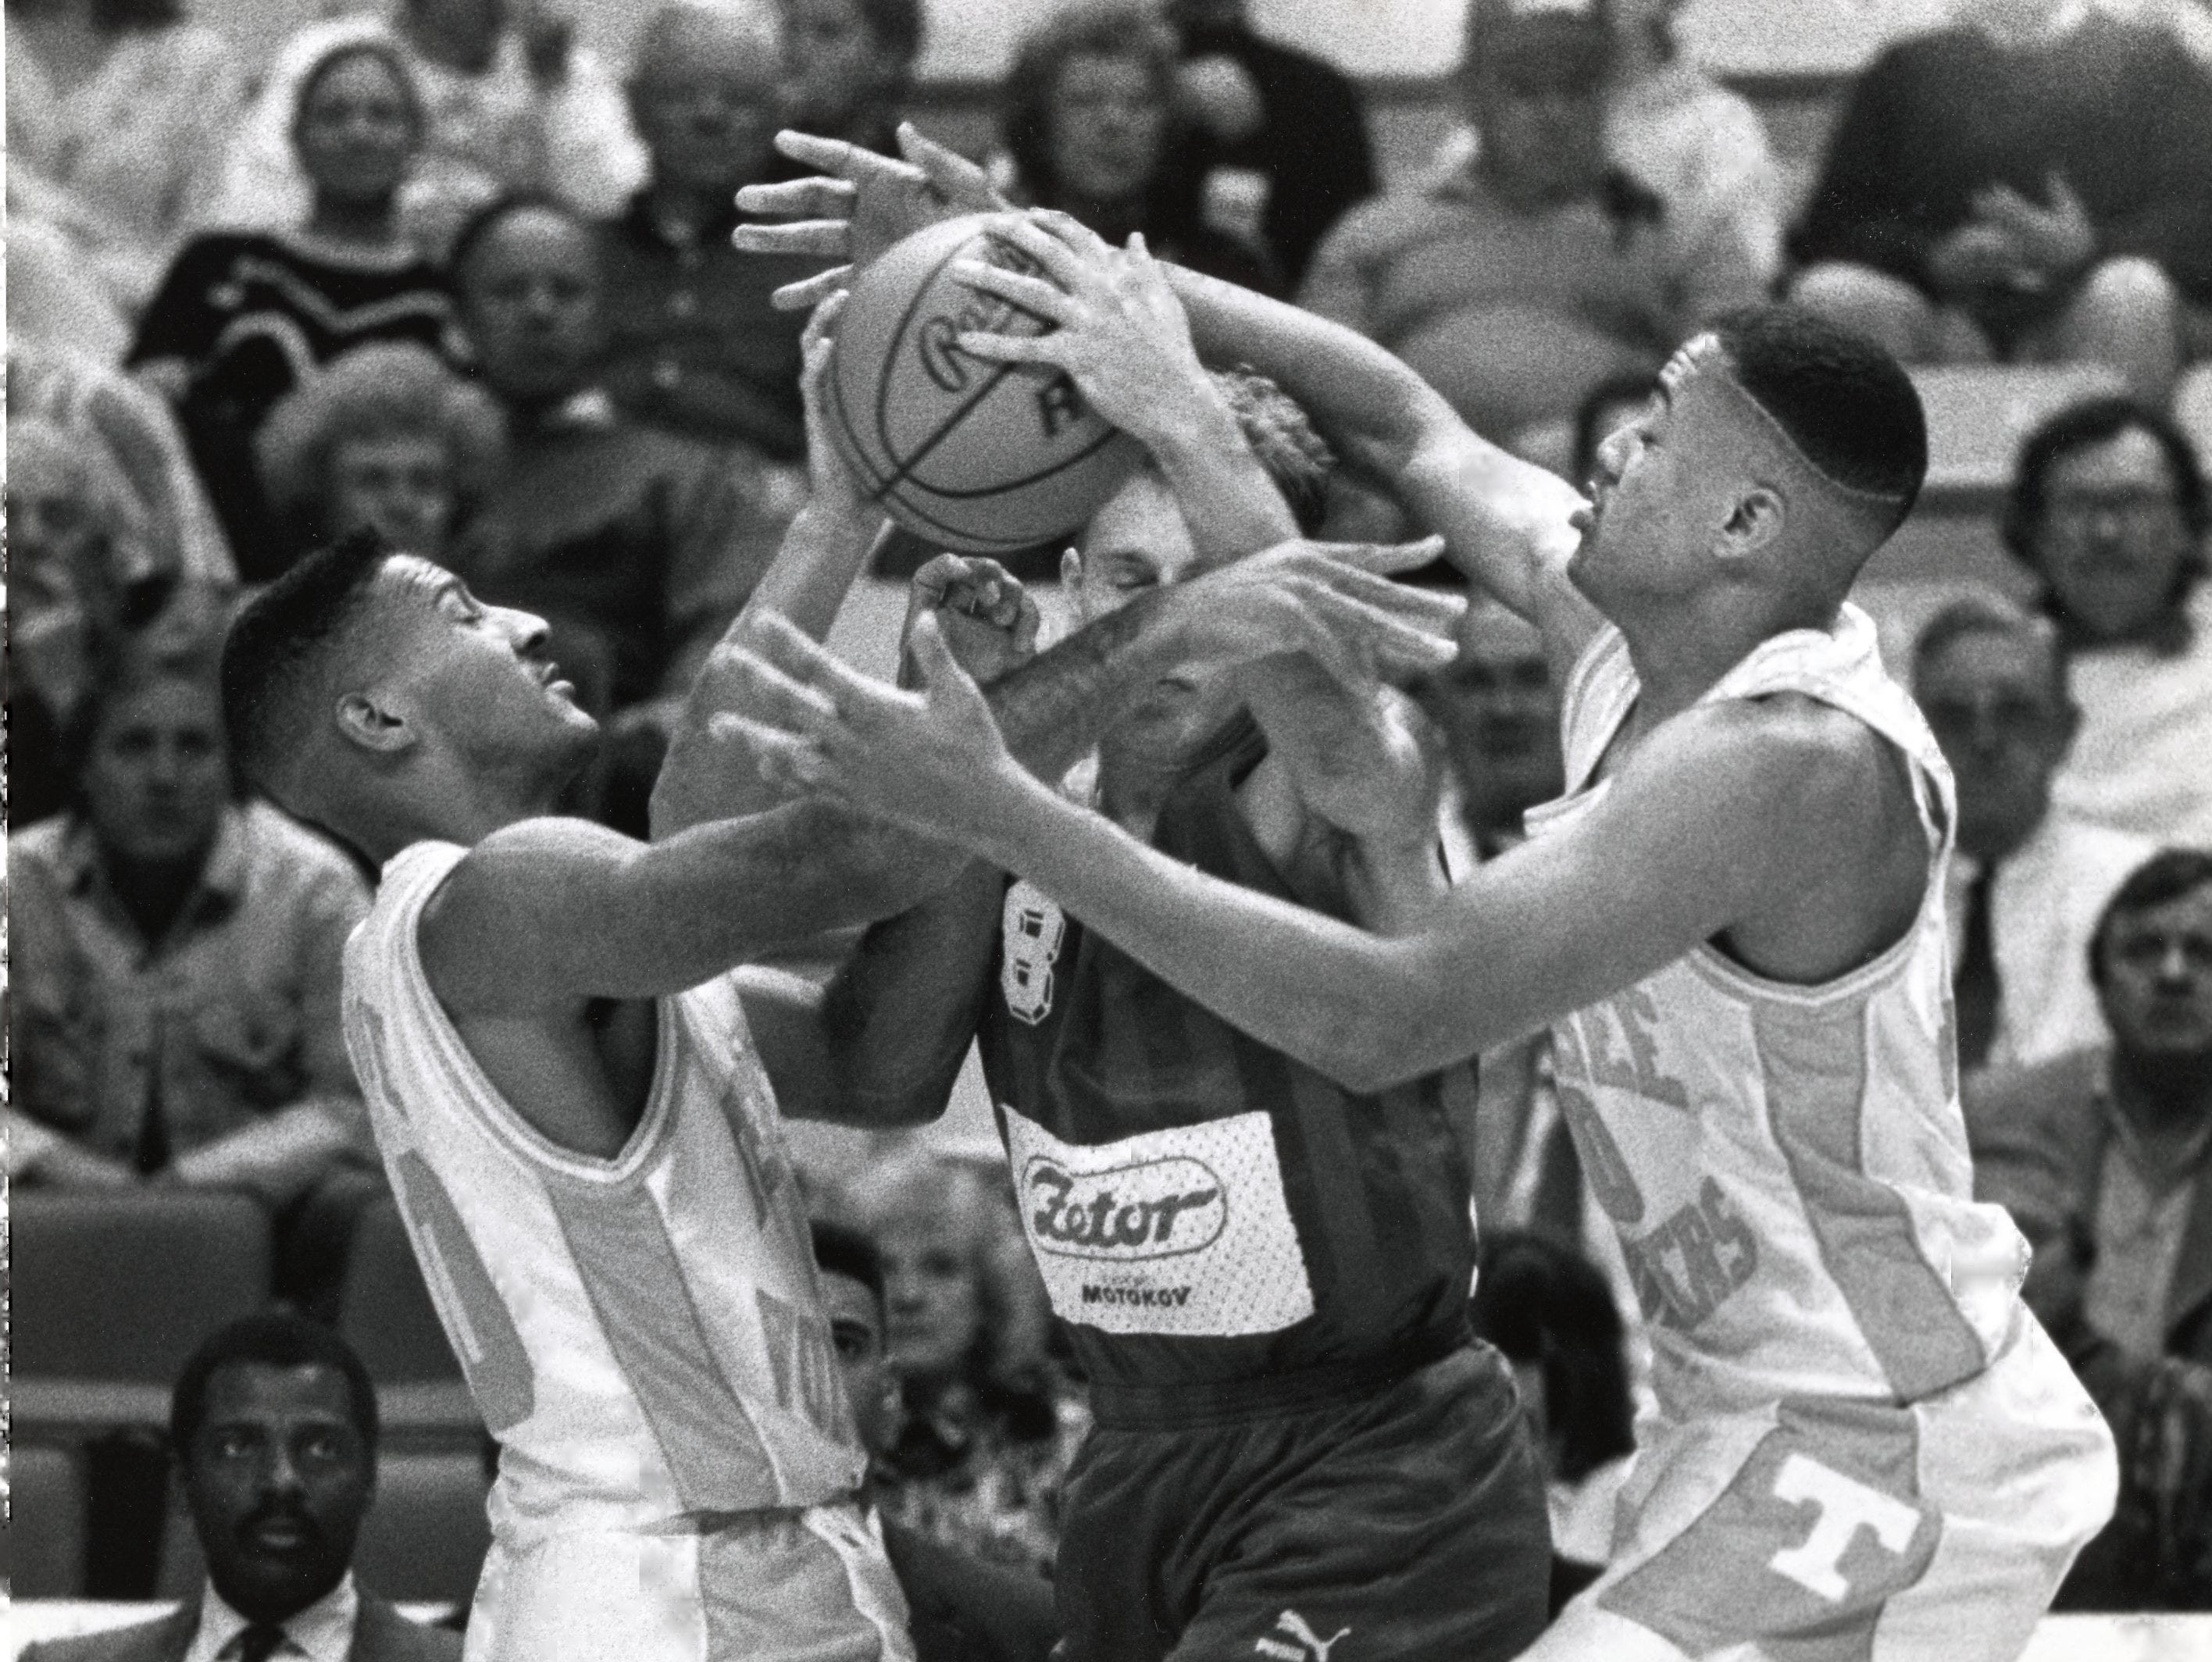 Tennessee's Jay Price (10) and Corey Allen (40) block in Czechslovakia's Martin Belik (8) during a game in November 1991.